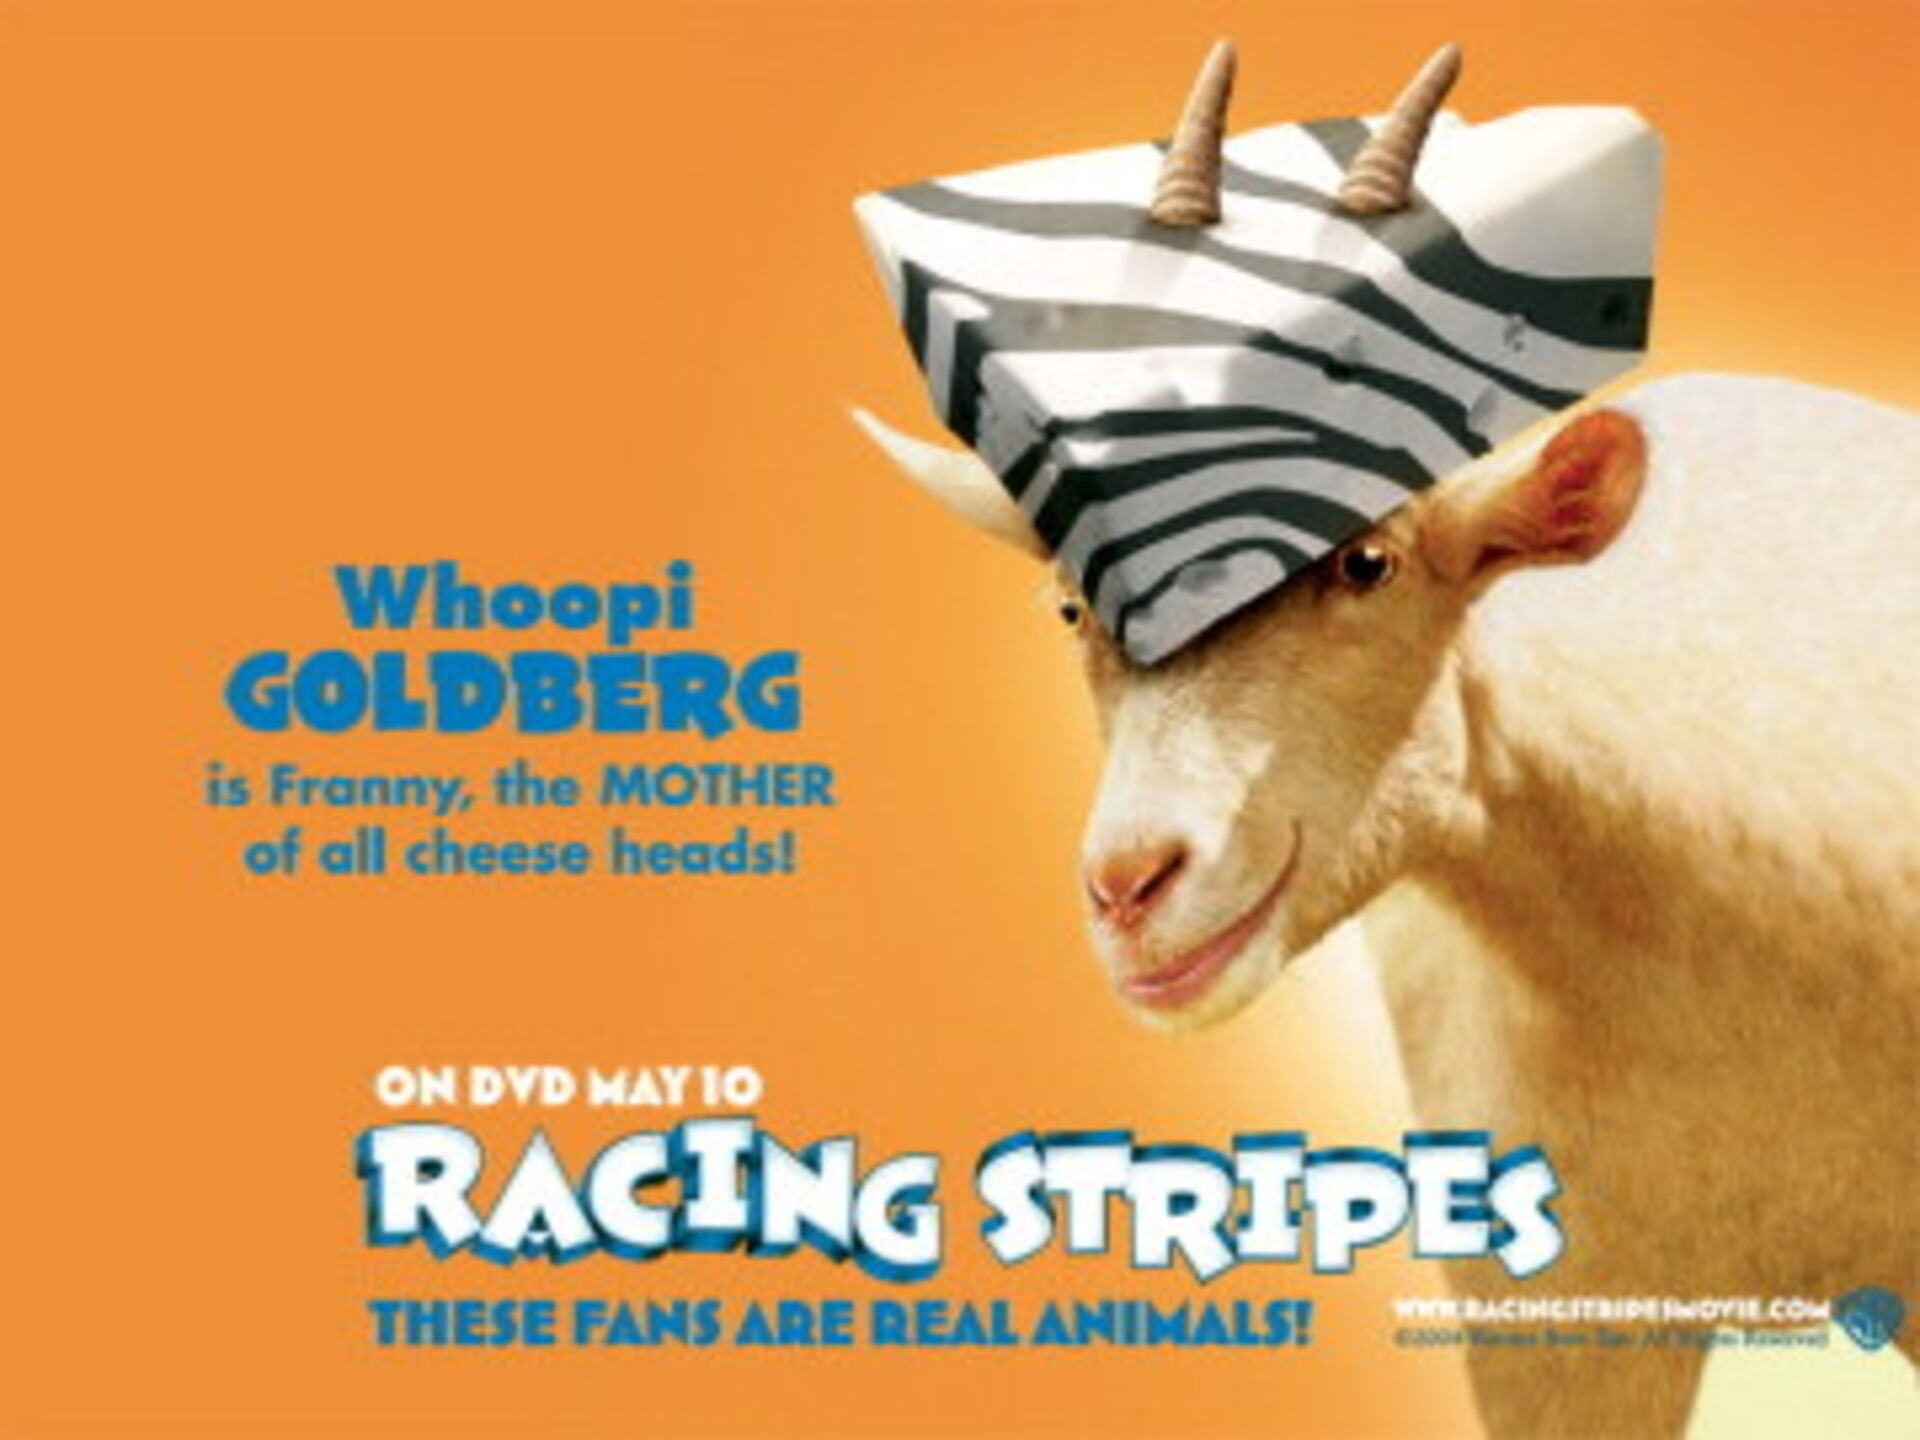 Racing Stripes - Image 62